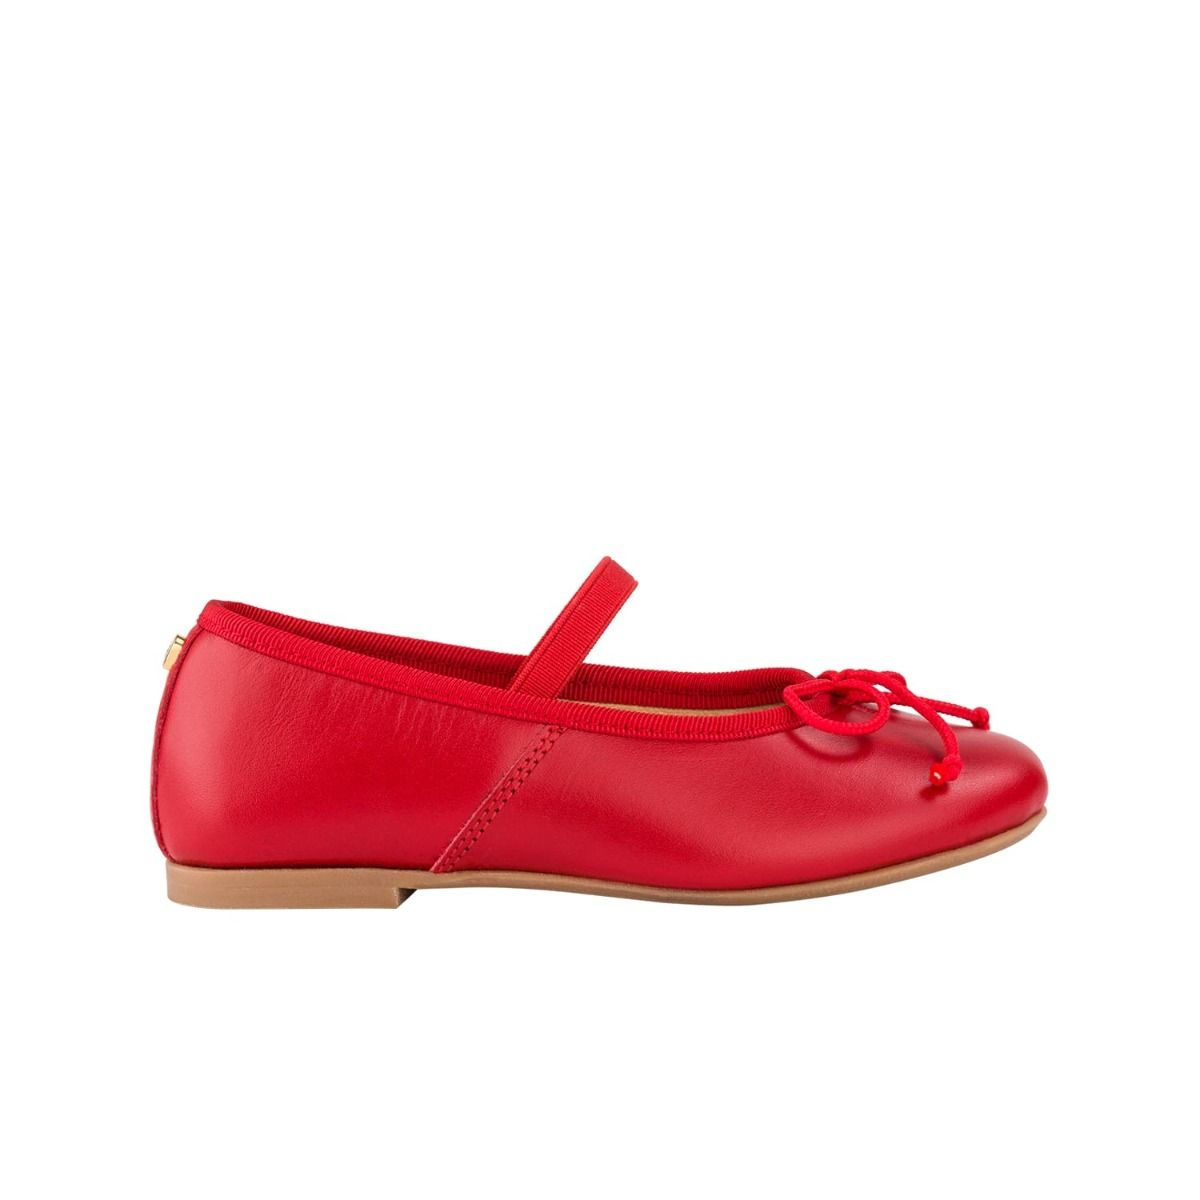 Toddler ballet flats in red leather with bow detail in cord.